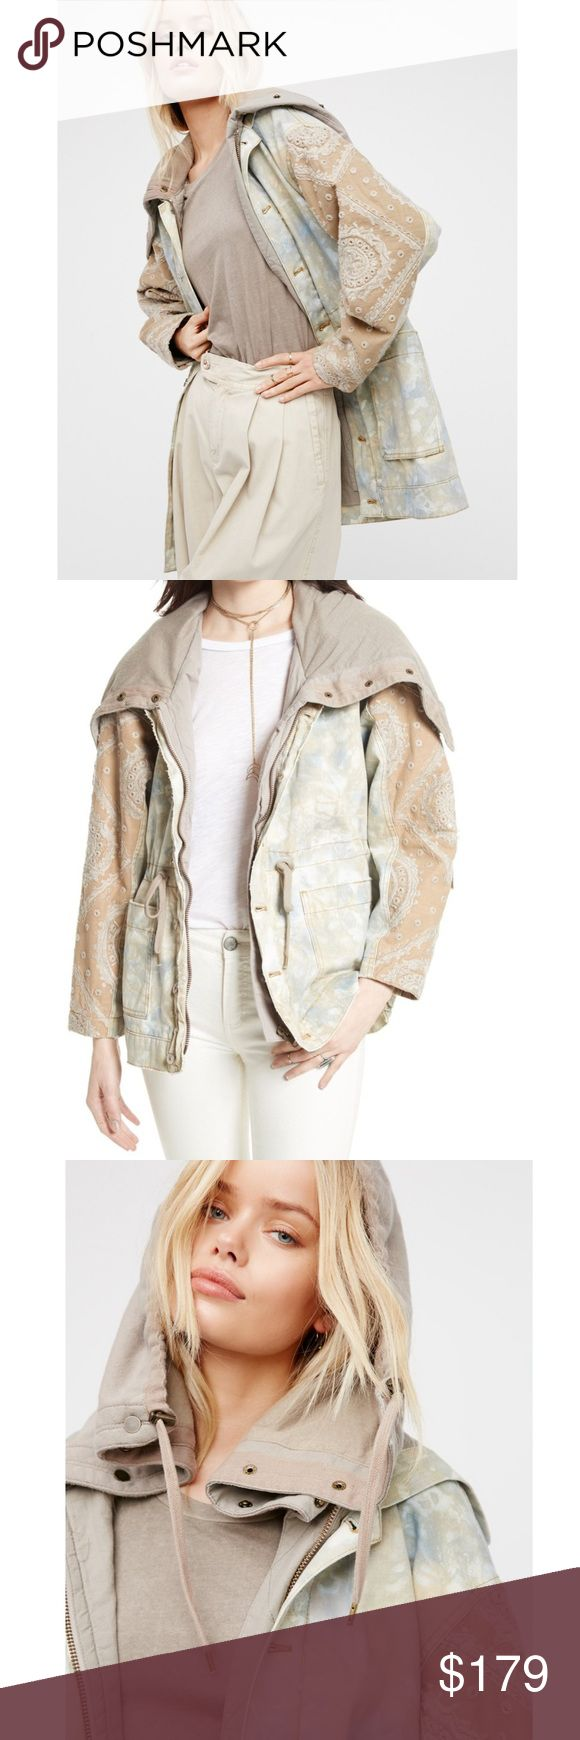 Free People Hooded Layered Tie dye parka Boho-inspired tie dye parka featuring beautiful embroidery along the sleeves and an effortlessly layered look with a doubled hood detail.  Drawstring at the waist Front button and zipper closures Two large front pockets Lined 100% Cotton Machine Wash Cold. Nwt fits like a 10. Free People Jackets & Coats